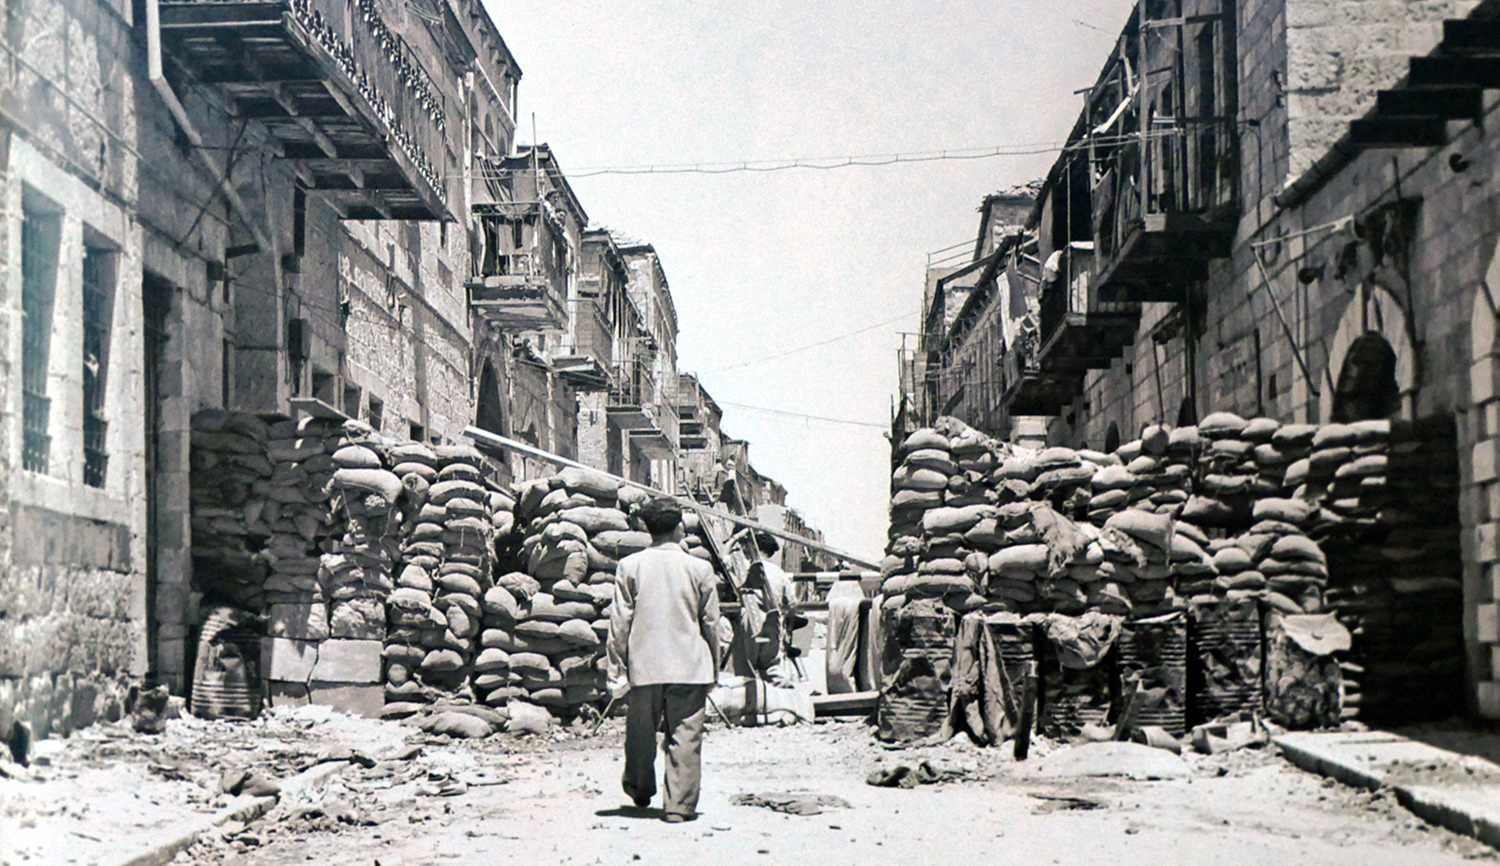 A barricaded street during the Israeli War of Independence in 1948. Universal History Archive/ Universal Images Group via Getty Images.